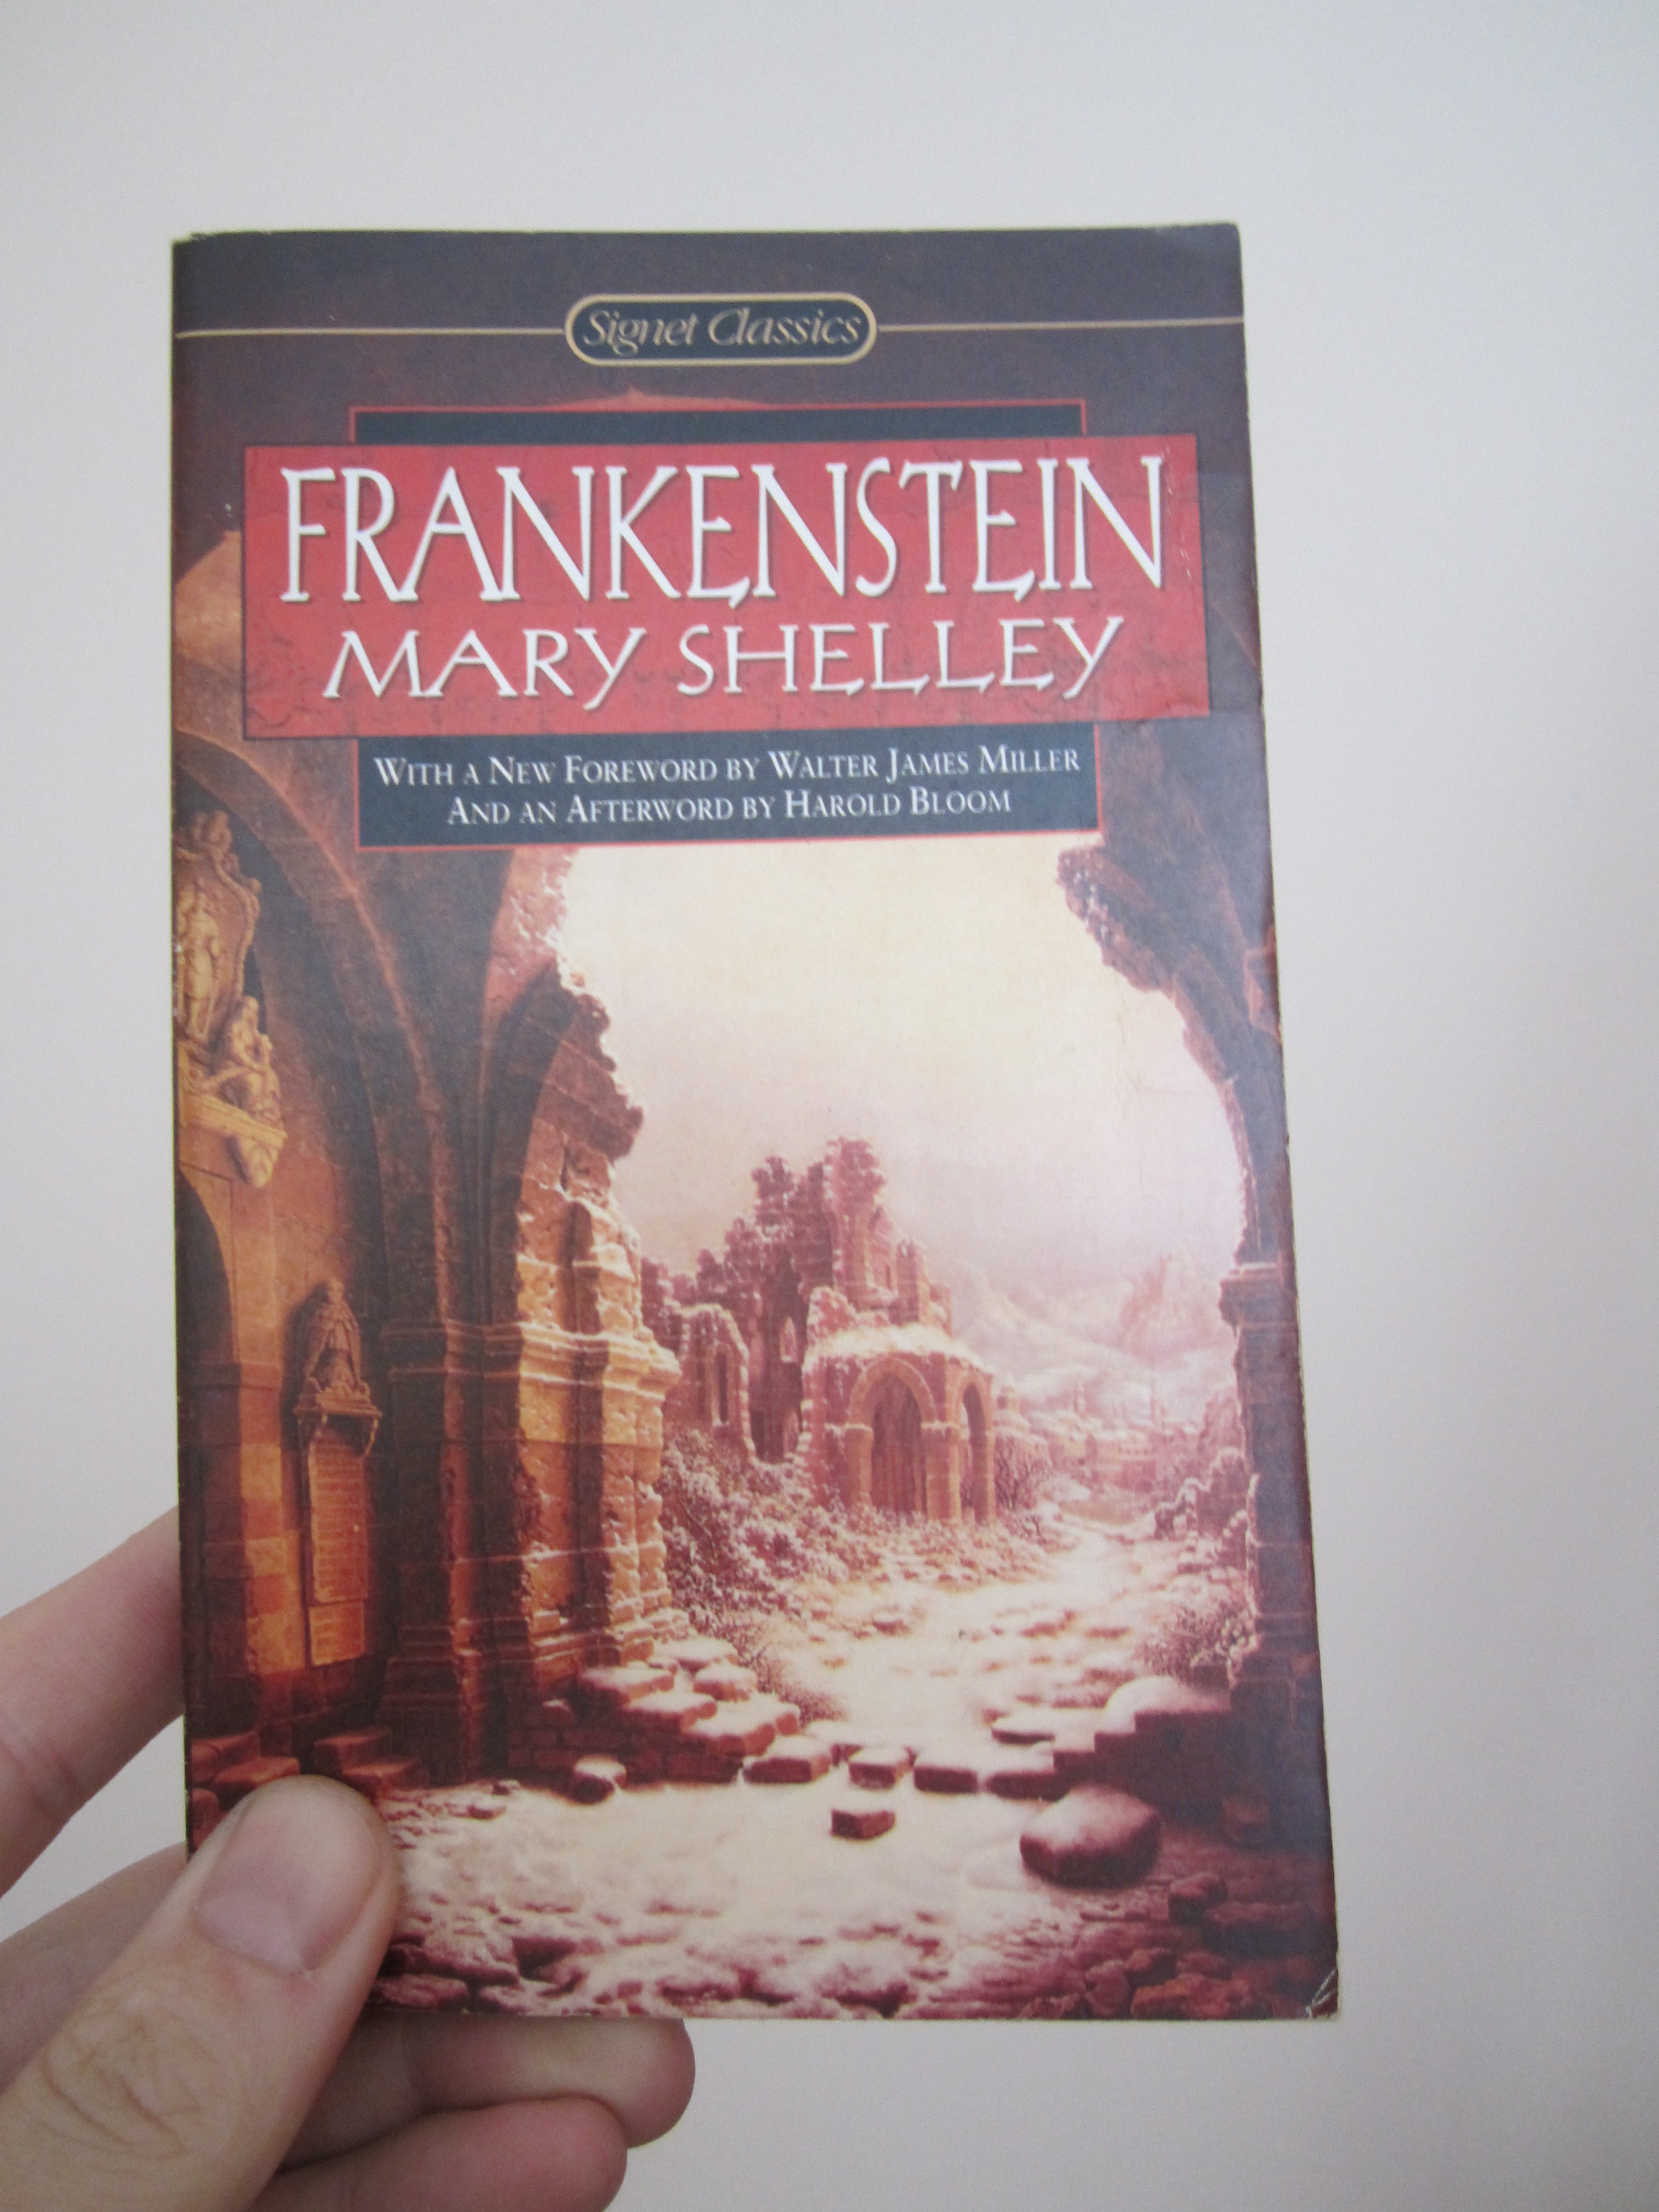 the moral ambiguity in frankenstein a novel by mary shelley Mary shelley (august 30, 1797  humans imagine science and its moral consequences than frankenstein  social at the heart of shelley's novel comes alive in a .